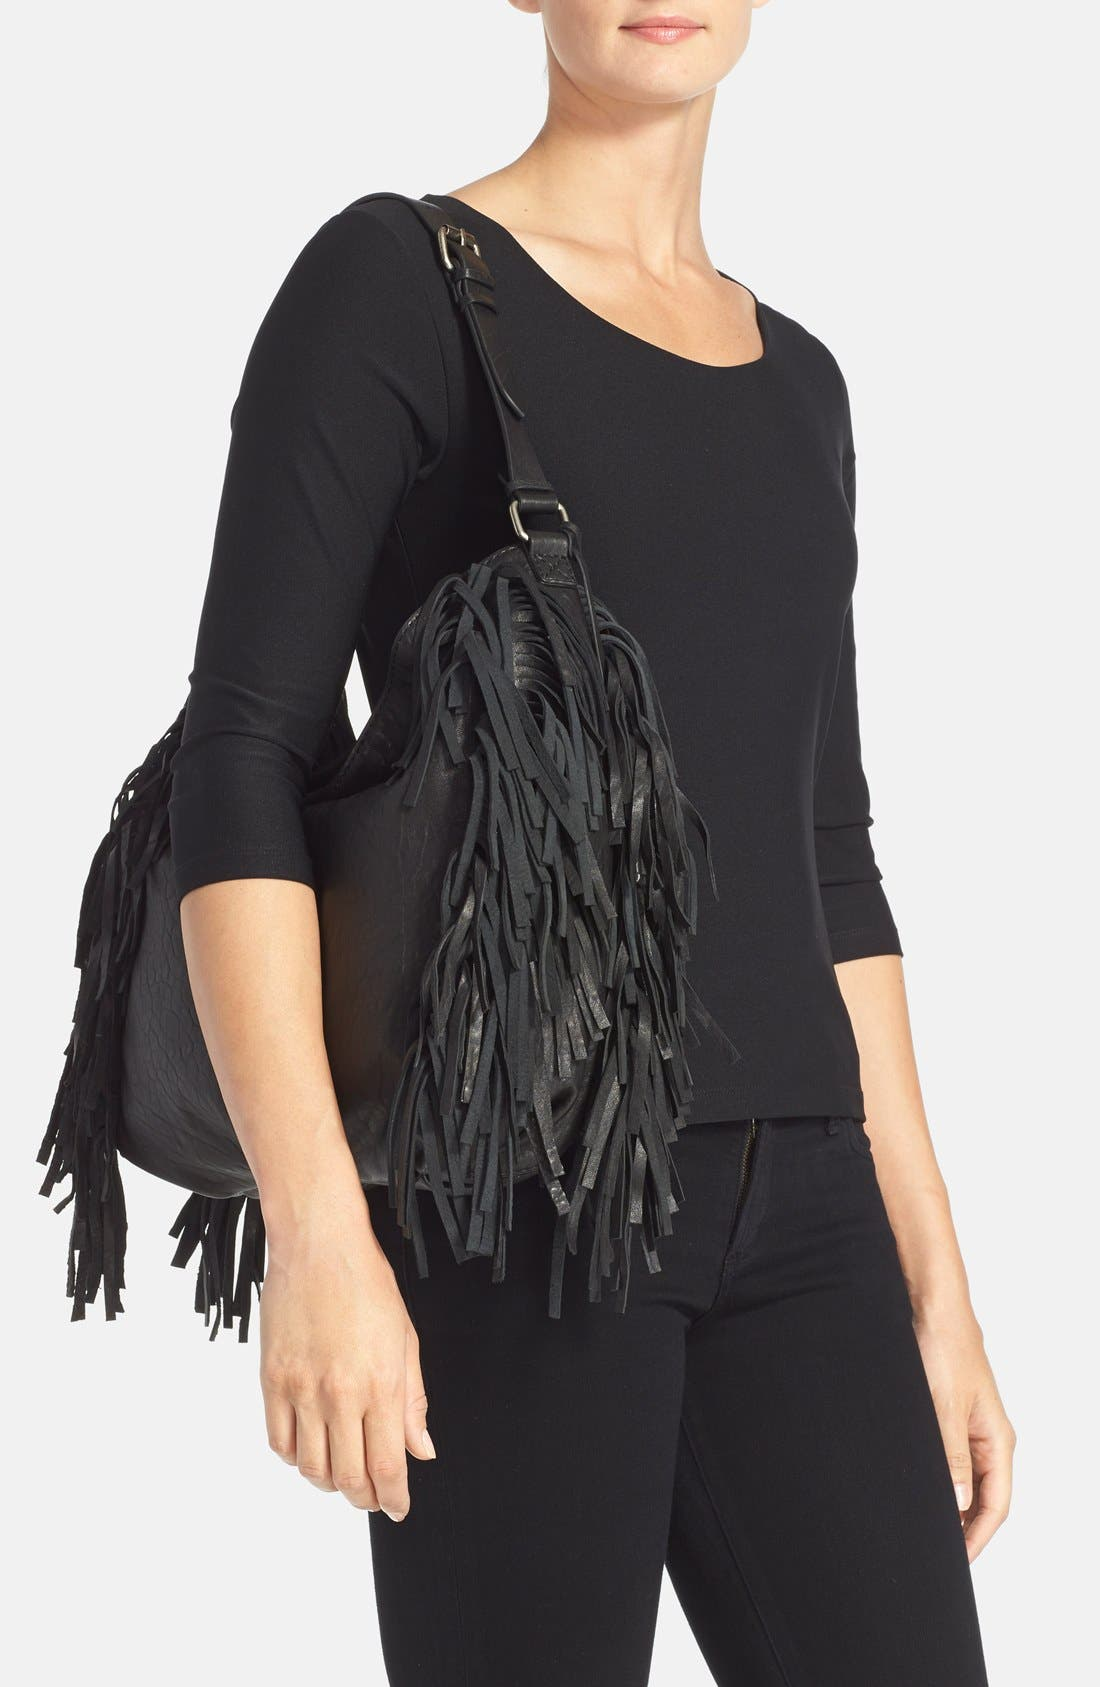 Treasure&Bond Fringe Hobo Bag,                             Alternate thumbnail 2, color,                             Black